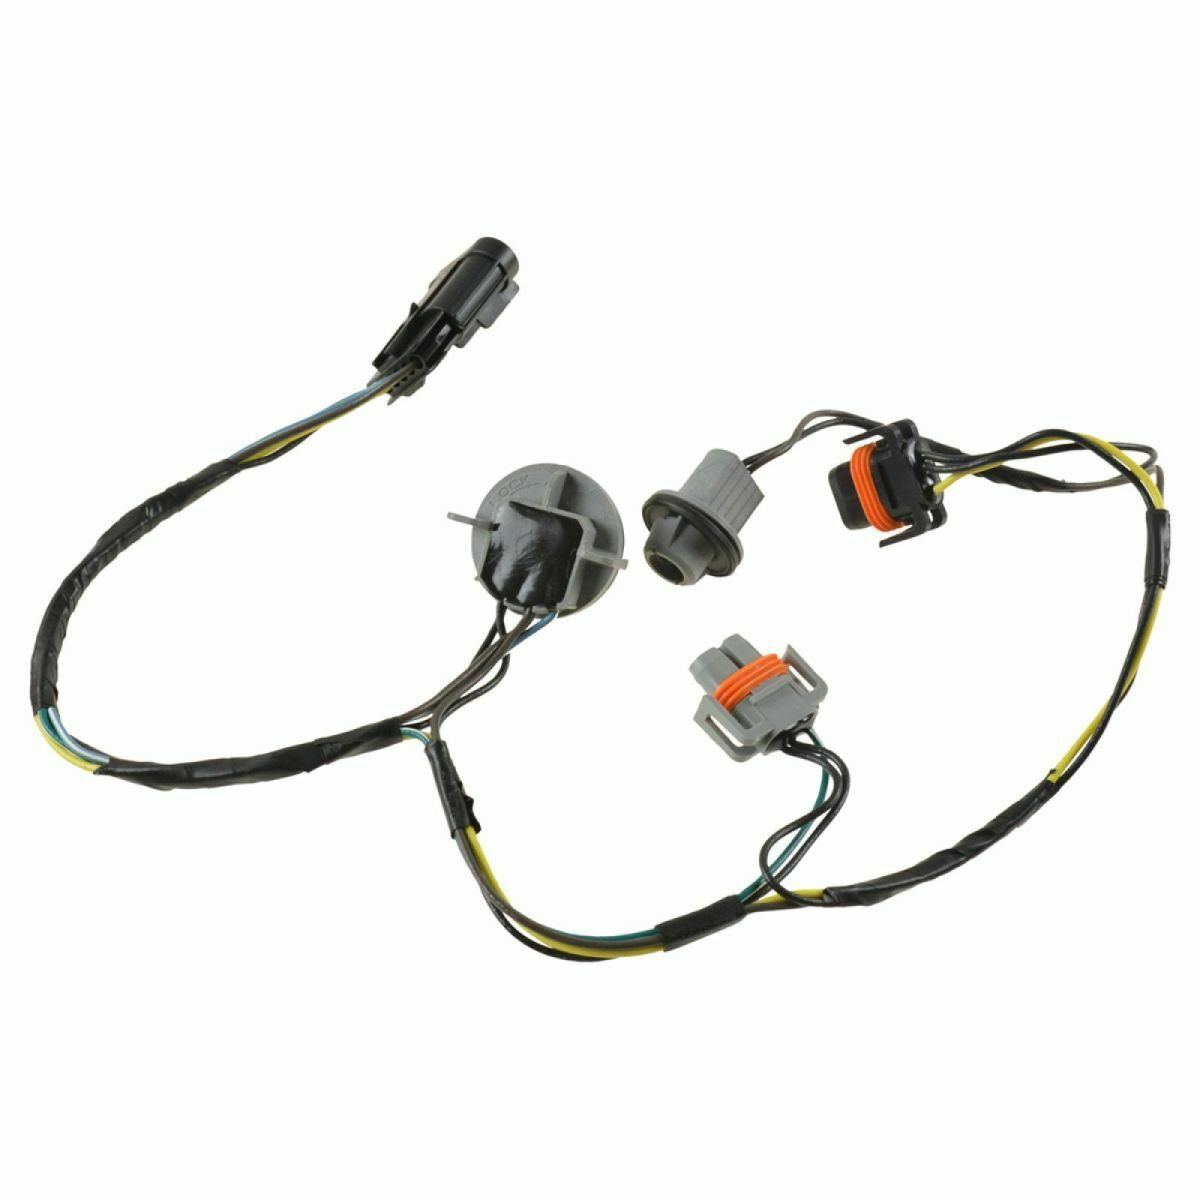 Chevy Oem Wiring Harness Largest Diagram Database Jeep 15930264 Headlight Lh Or Rh Side For 08 12 Picclick Com Tekonsha Engine